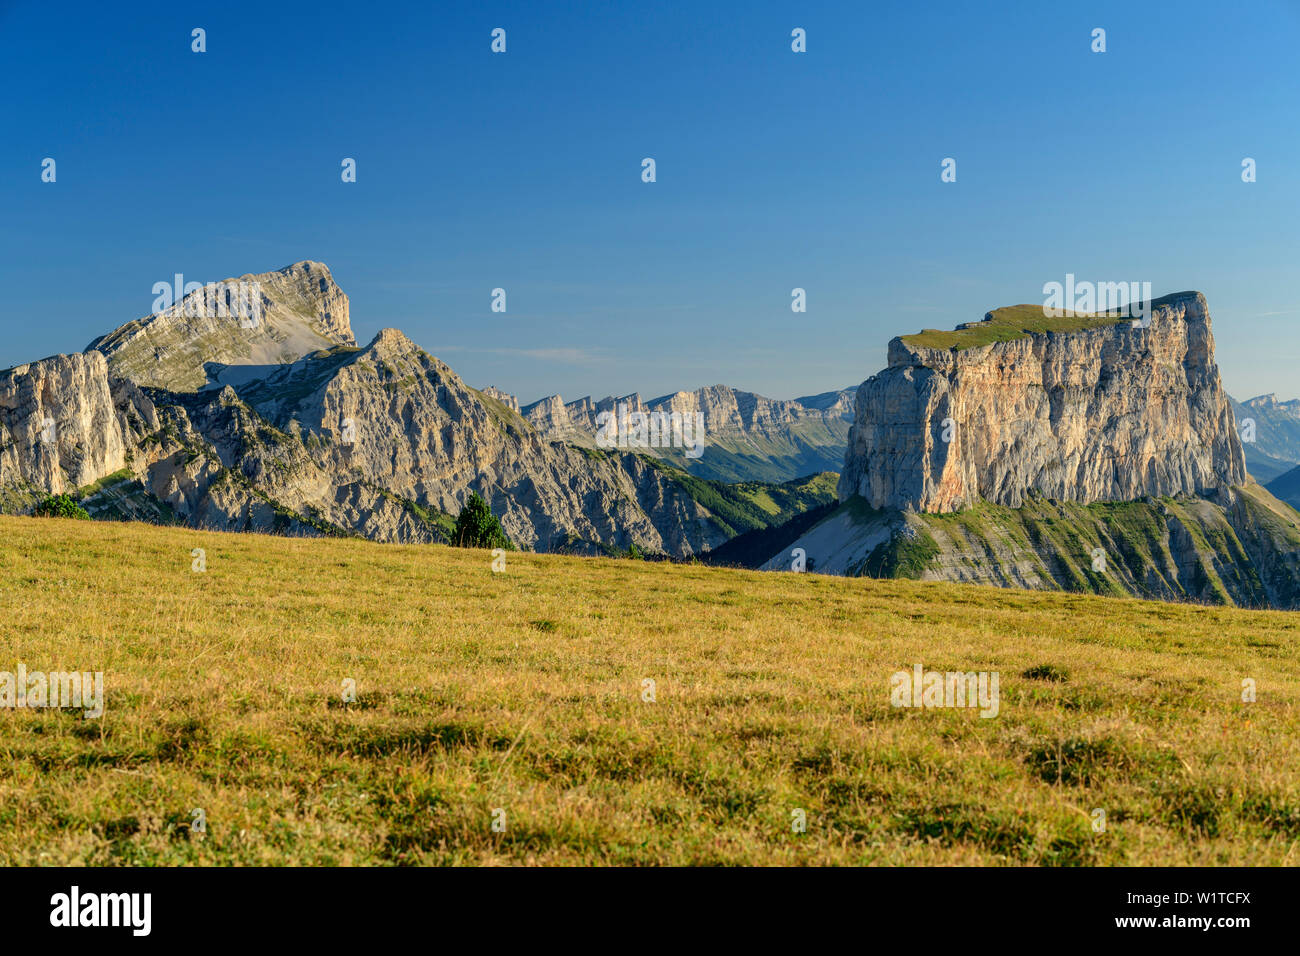 Grand Veymont and Mont Aiguille, from the Tête Chevalier, Vercors, Dauphine, Dauphine, Isère, France - Stock Image